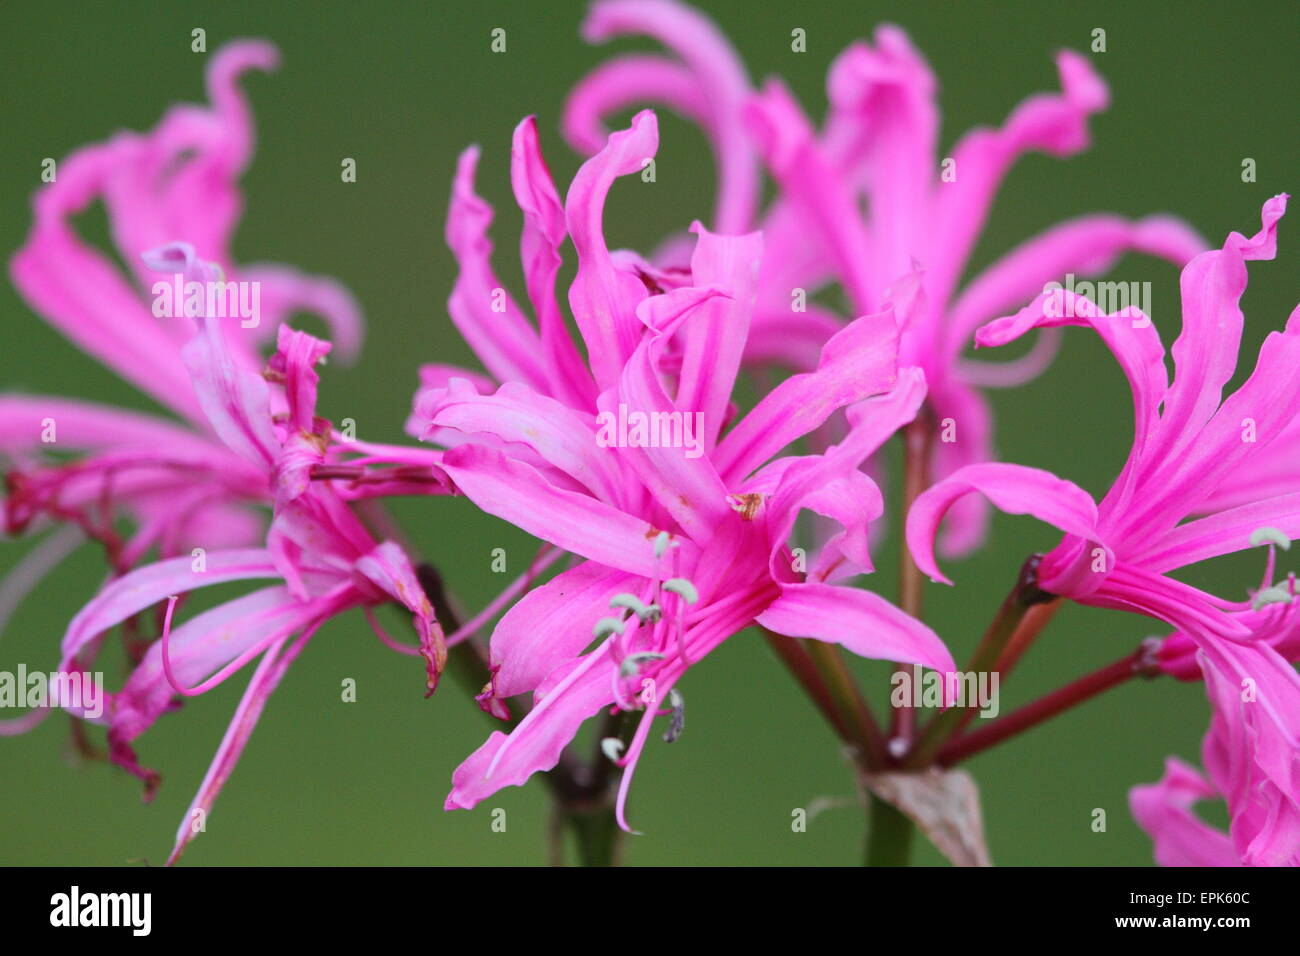 Spider lily flowers stock photos spider lily flowers stock images pink spider lily flowers dazzle up close in breenhold gardens the avenue mount wilson izmirmasajfo